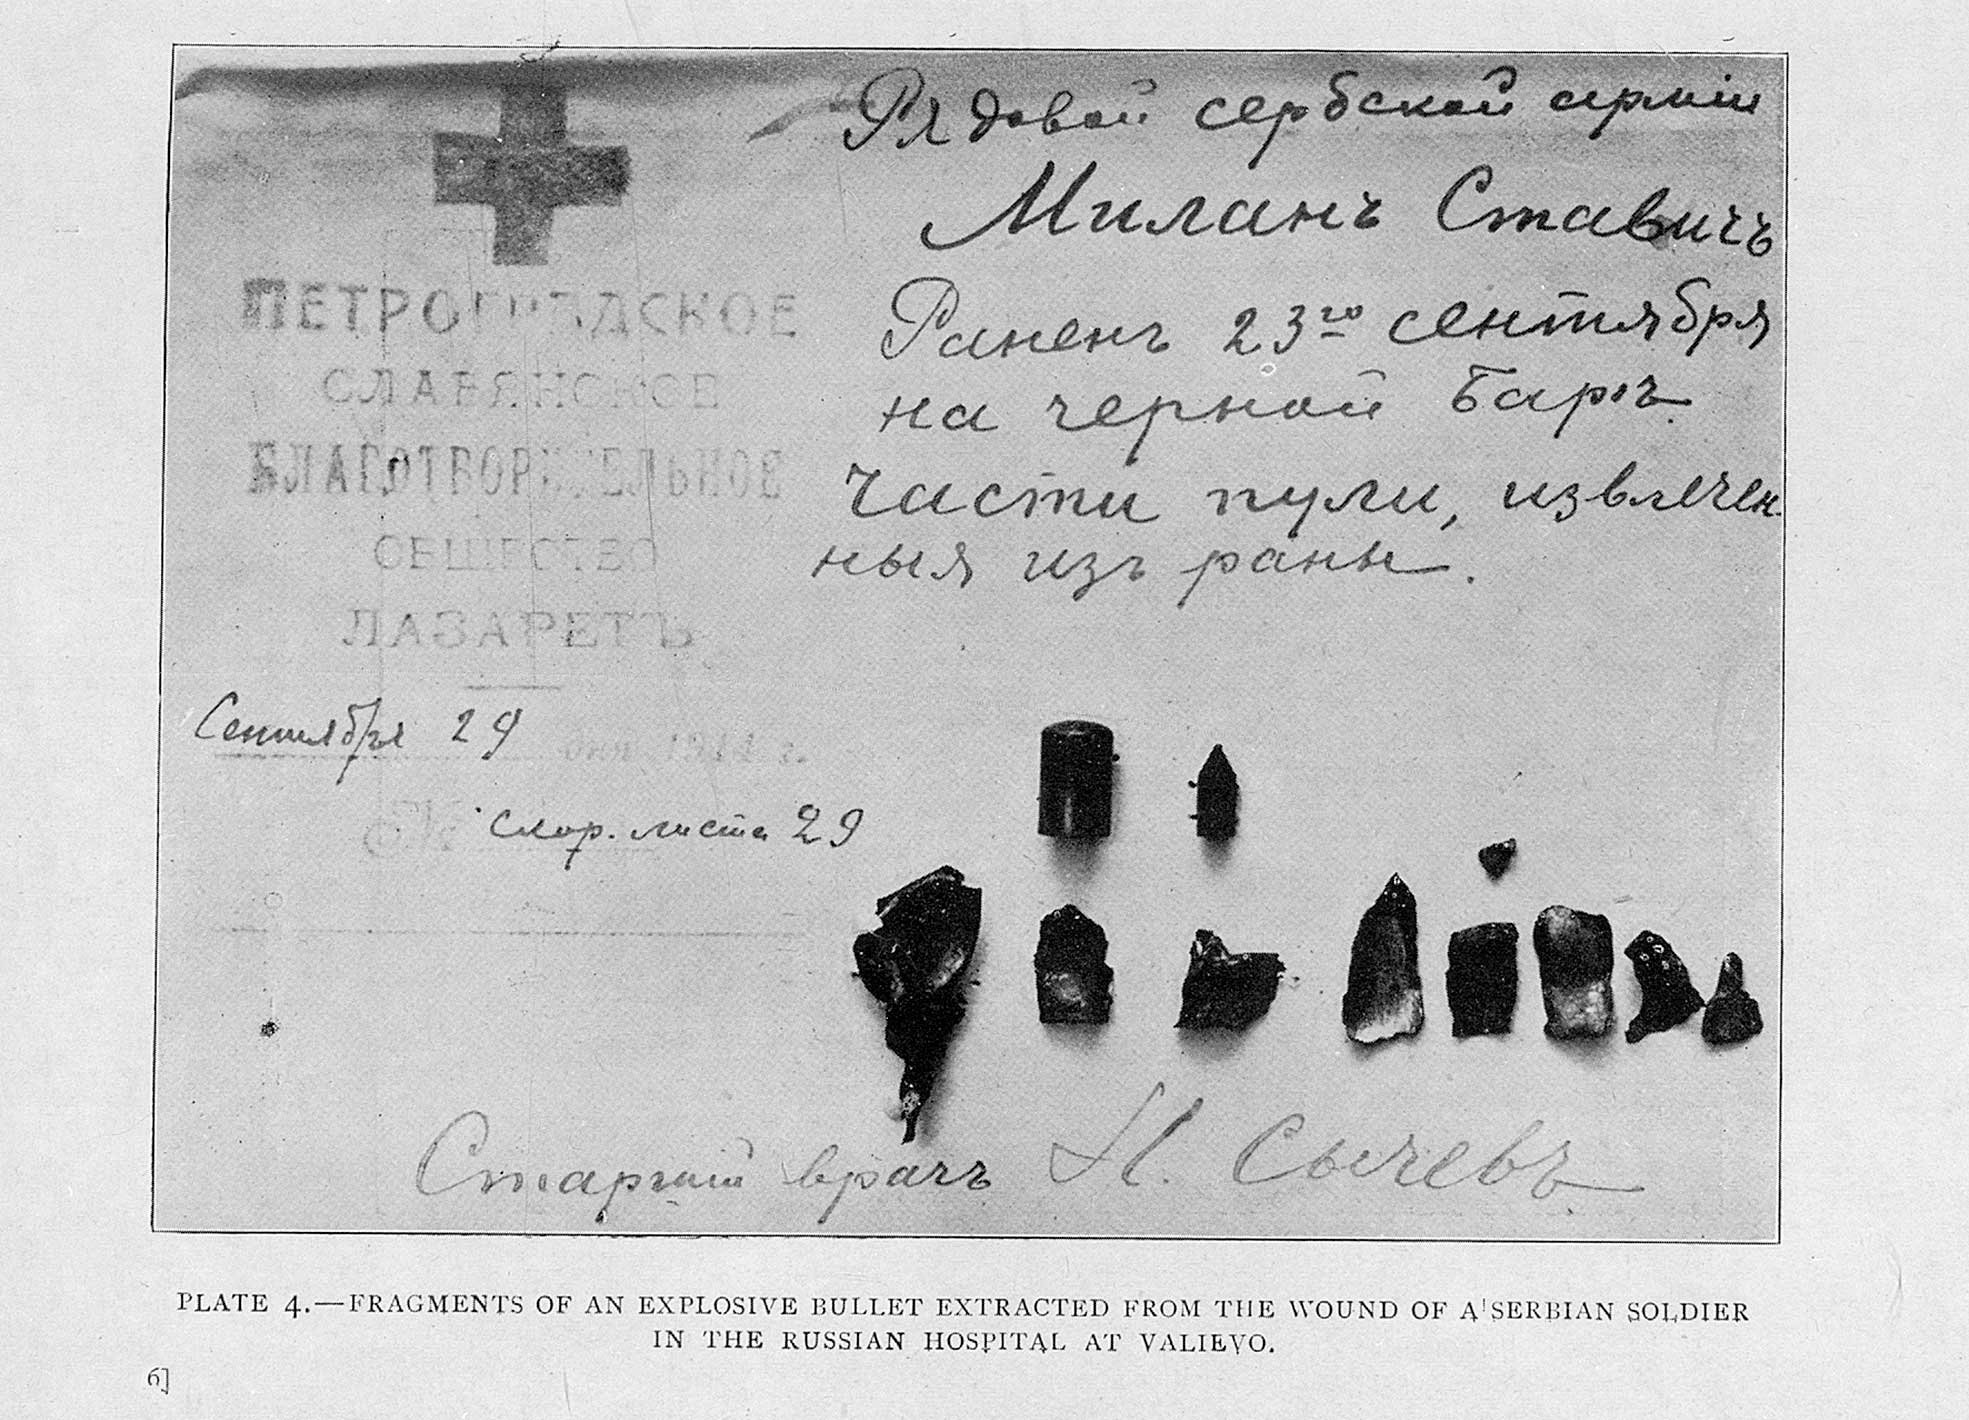 Fragments of an explosive bullet extracted from the wound of a soldier in 1914